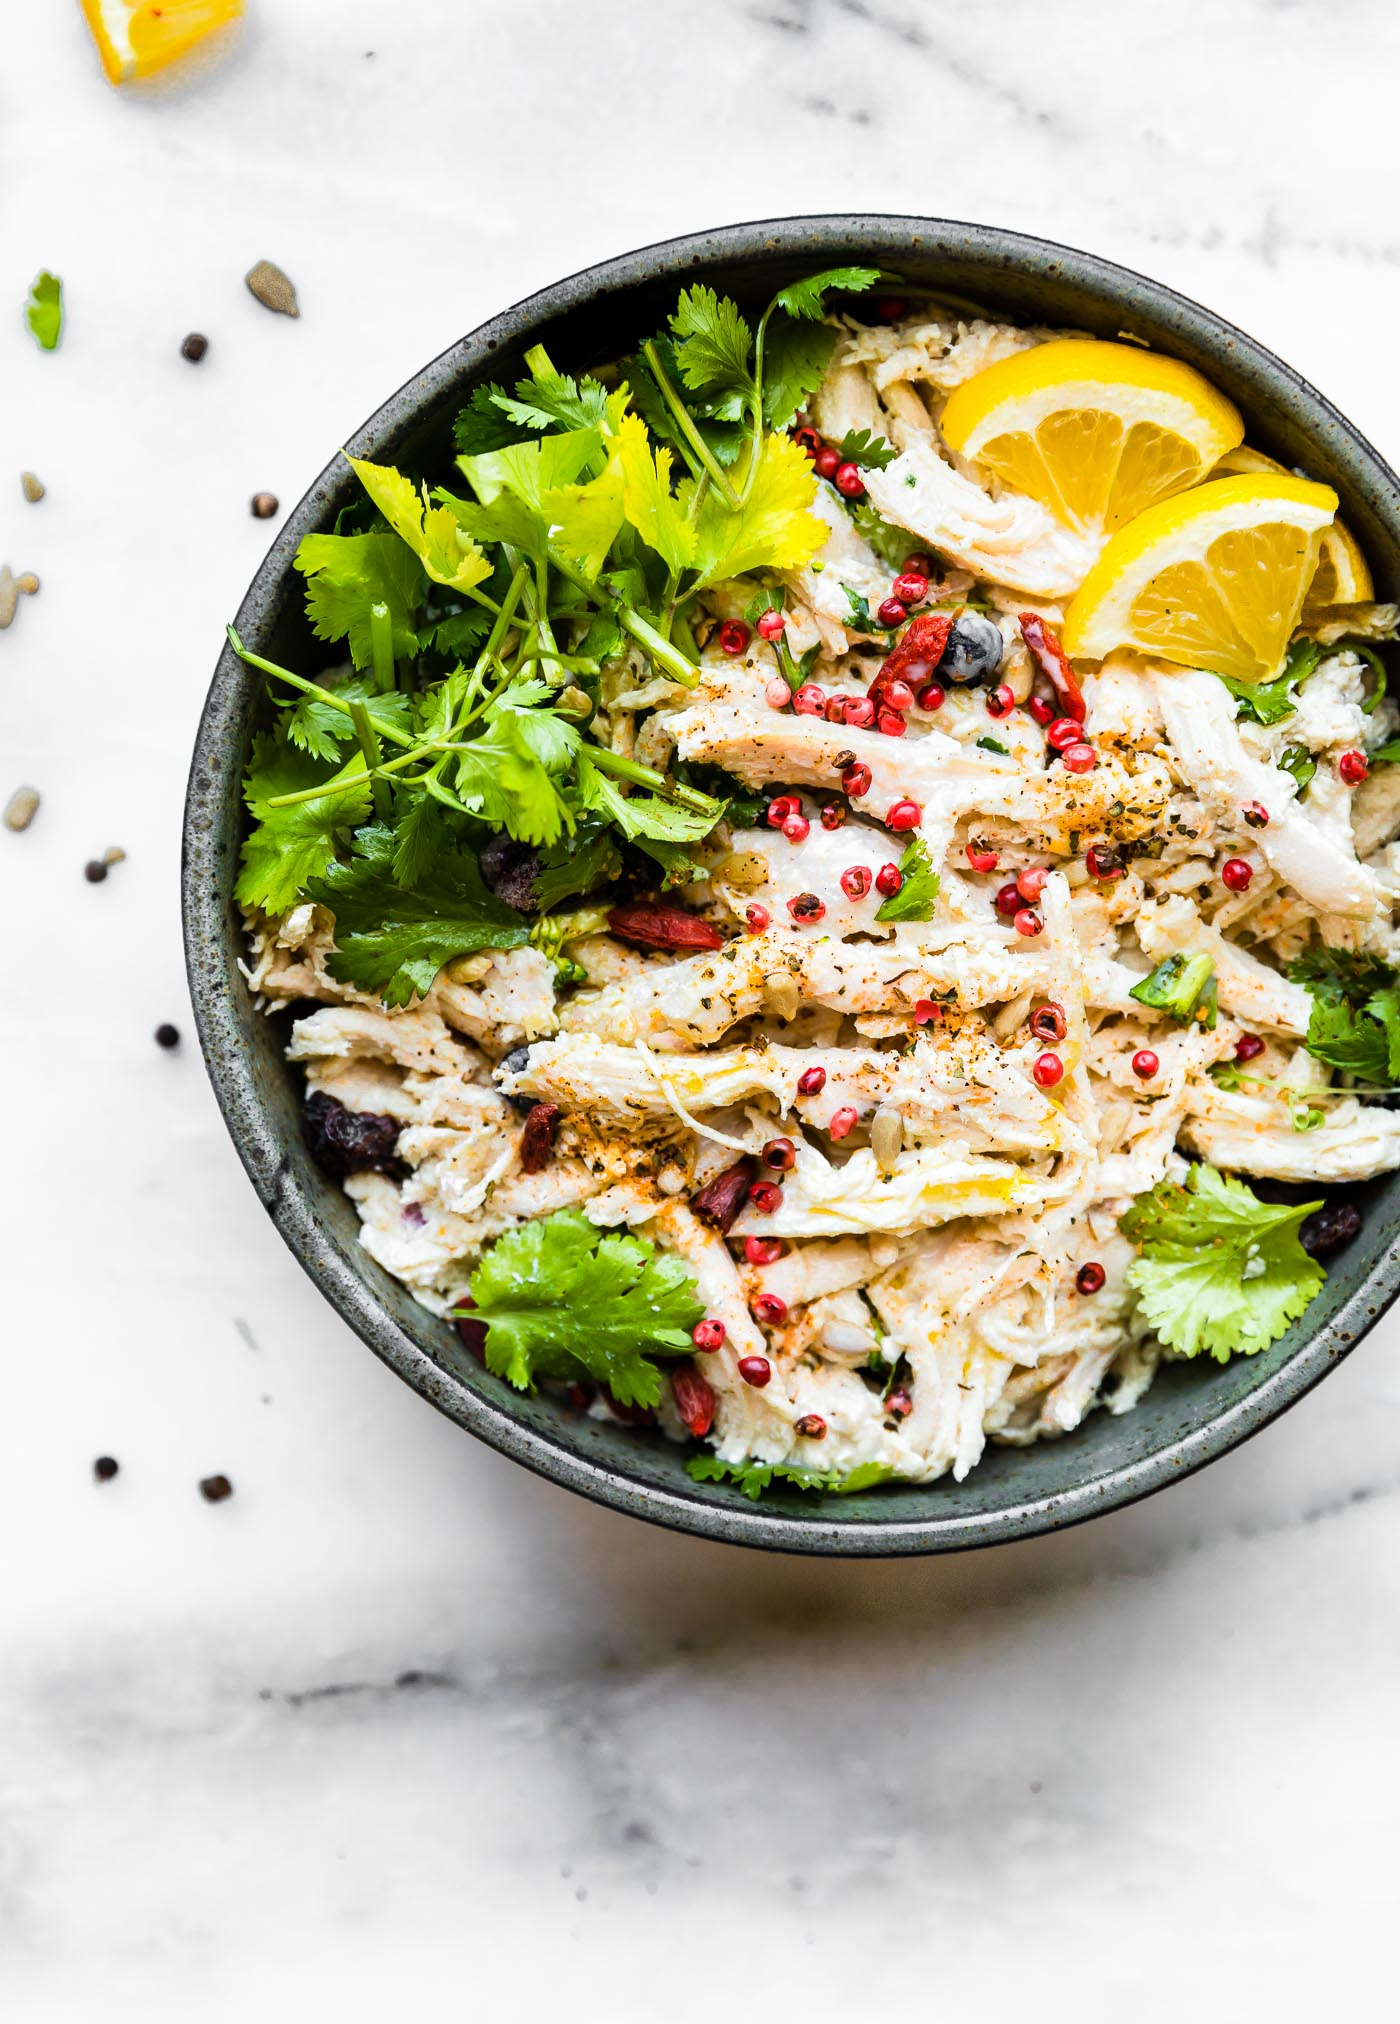 A lightened up Mayo Free Chicken Salad! A chicken salad bowl that's perfect for a healthy meal or side dish. Spinach, roasted broccoli, berries, chickpeas, roasted chicken, and herbs tossed in a light yogurt olive oil dressing. #cleaneating #salad #chicken #glutenfree